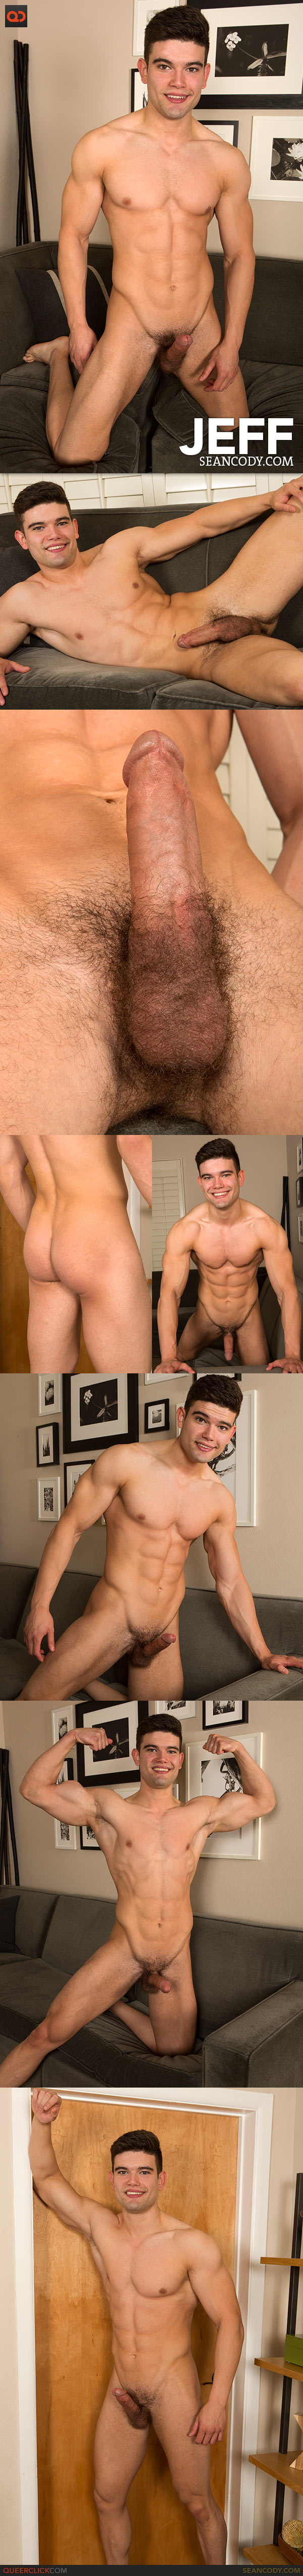 Tyler bishop on flirt4free guys twink college boy dildos his tight ass